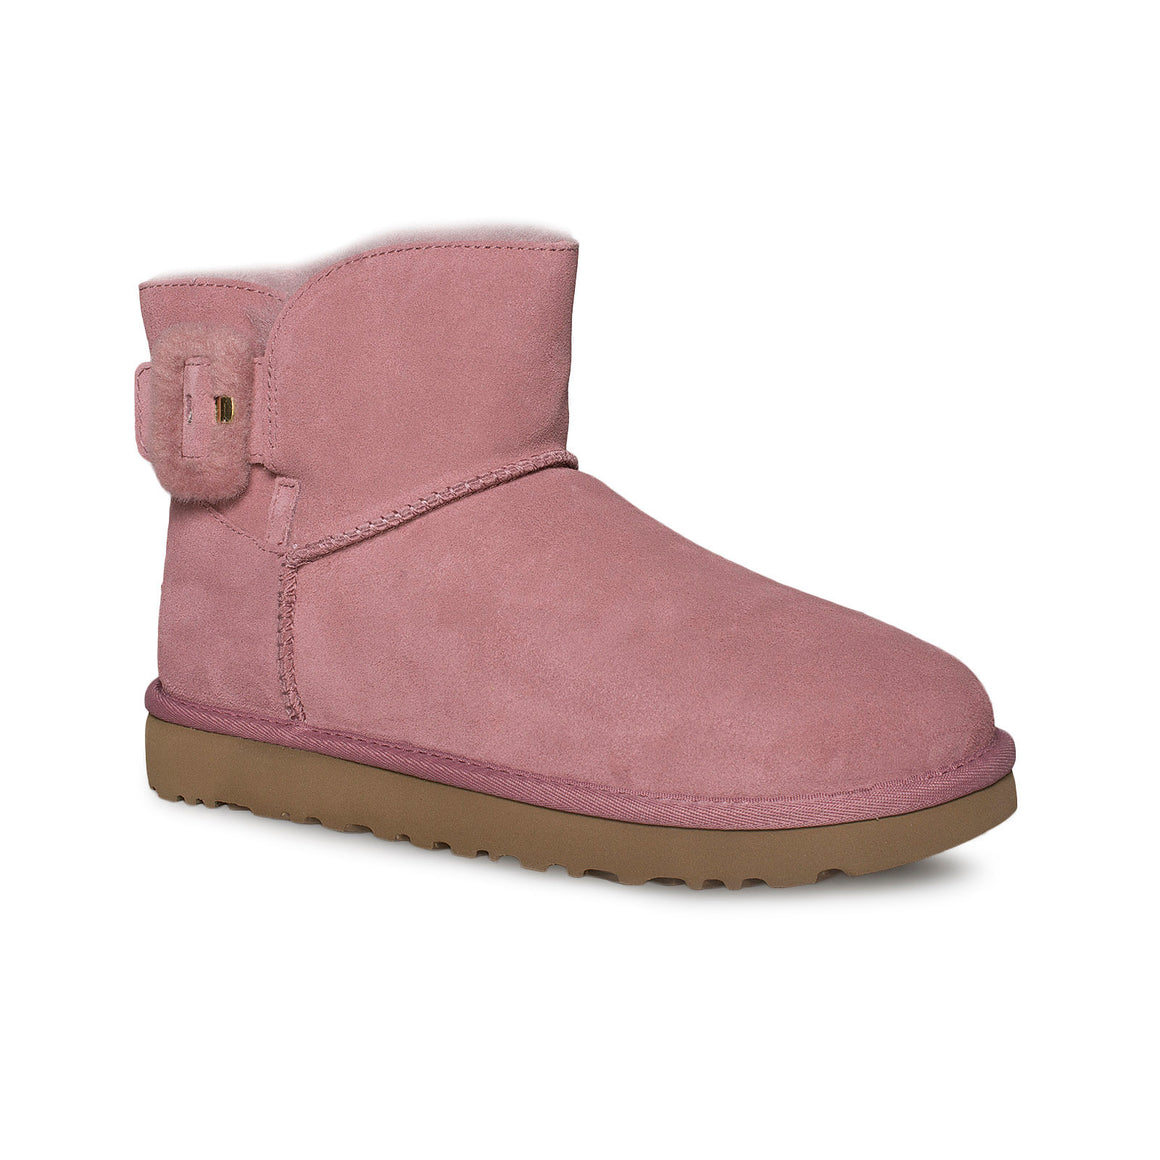 UGG Mini Fluff Buckle Pink Dawn Boots - Women's